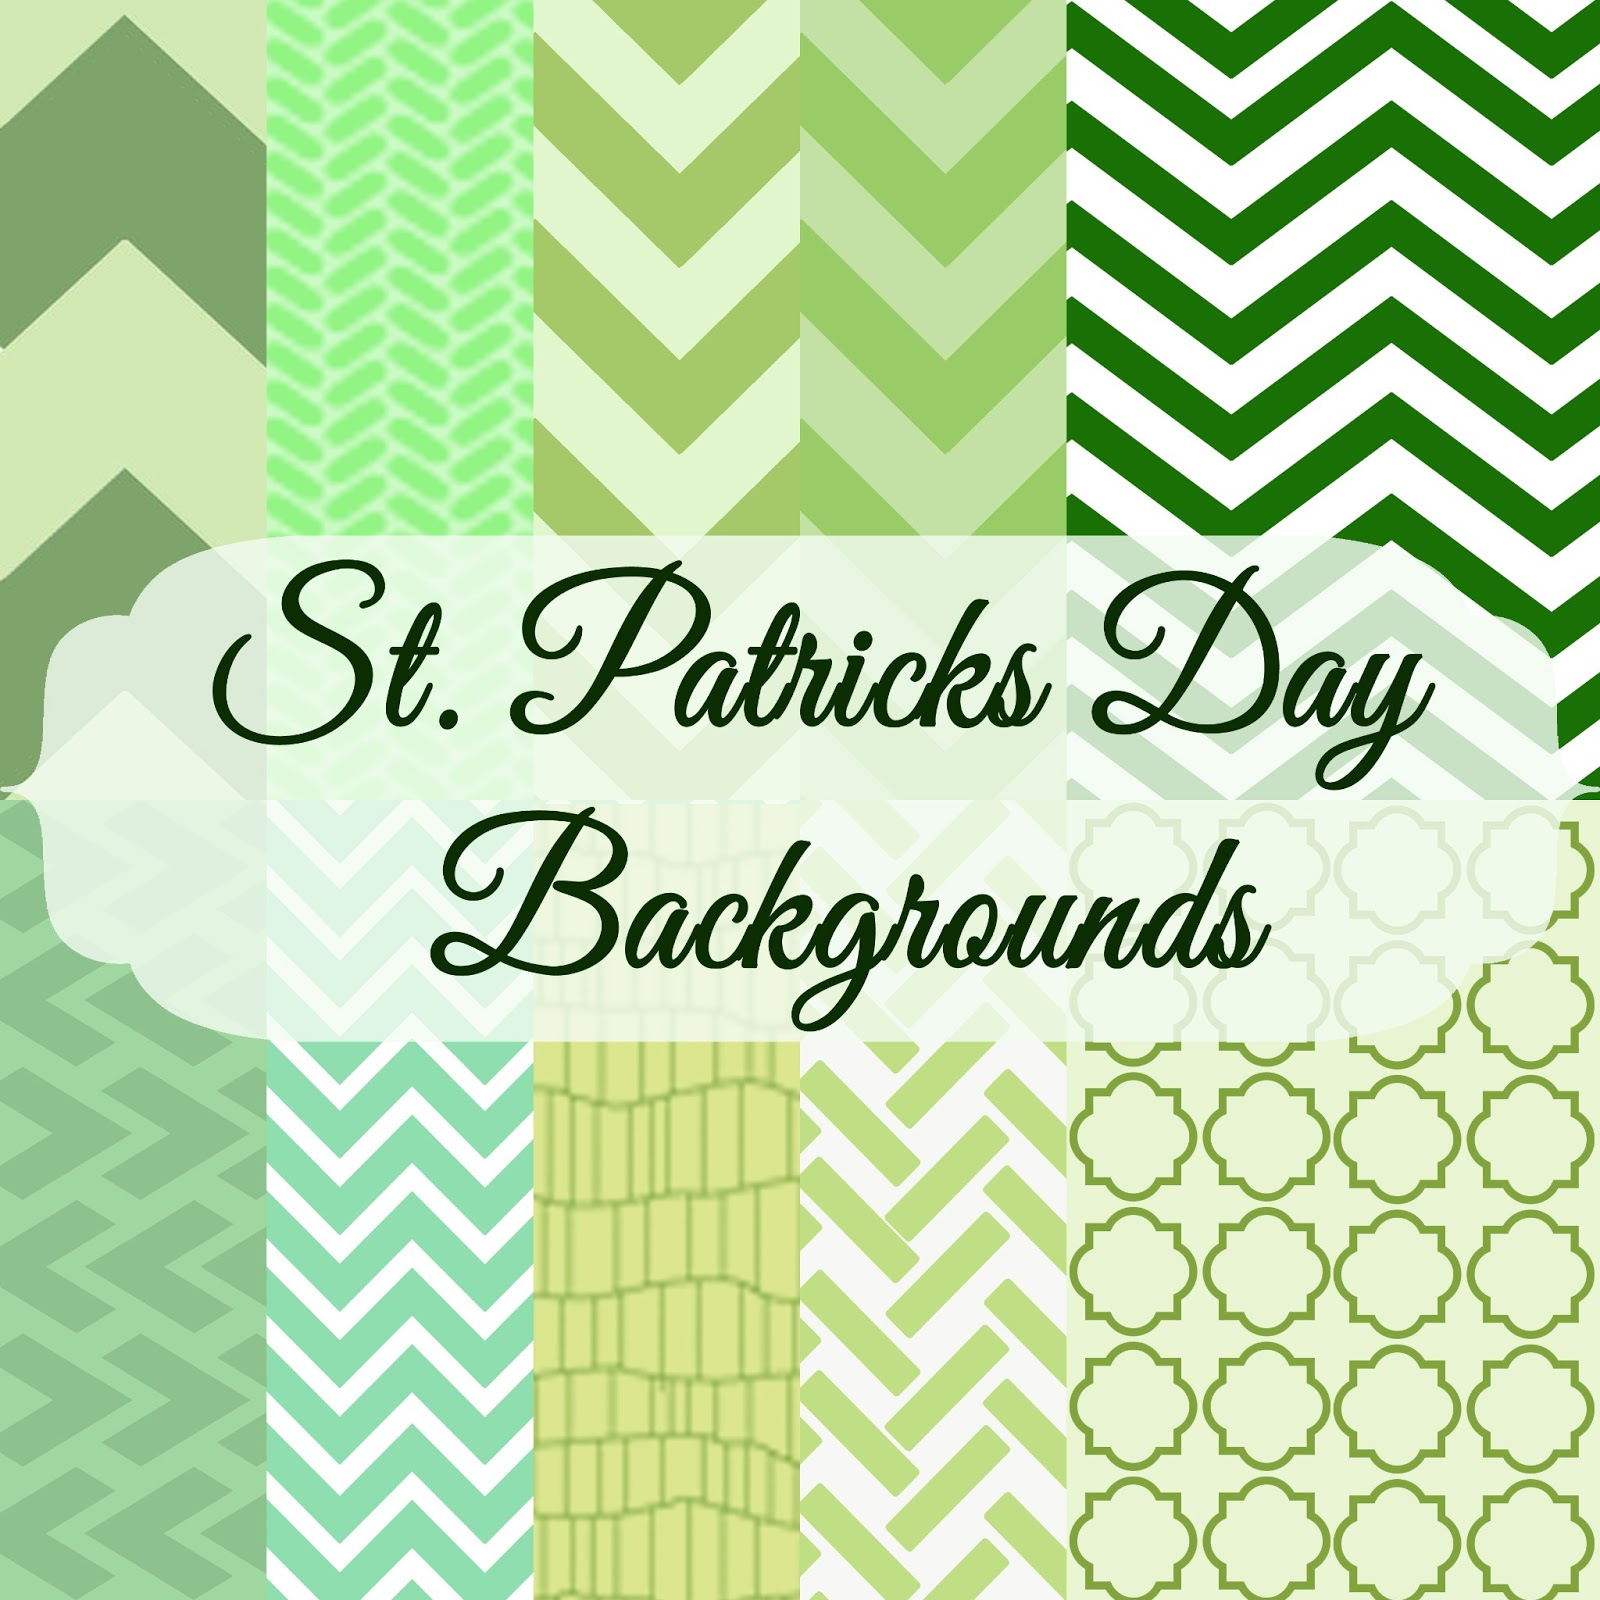 Find and save ideas about St patricks day quotes on Pinterest. | See more ideas about St patrick quotes, St patrick's day sayings and Happy st patricks day. DIY and crafts 22 Free Printables for St. Martinez Kosin such a cute idea. Posts about Art written by sweetreagan Luck of the Irish See more.